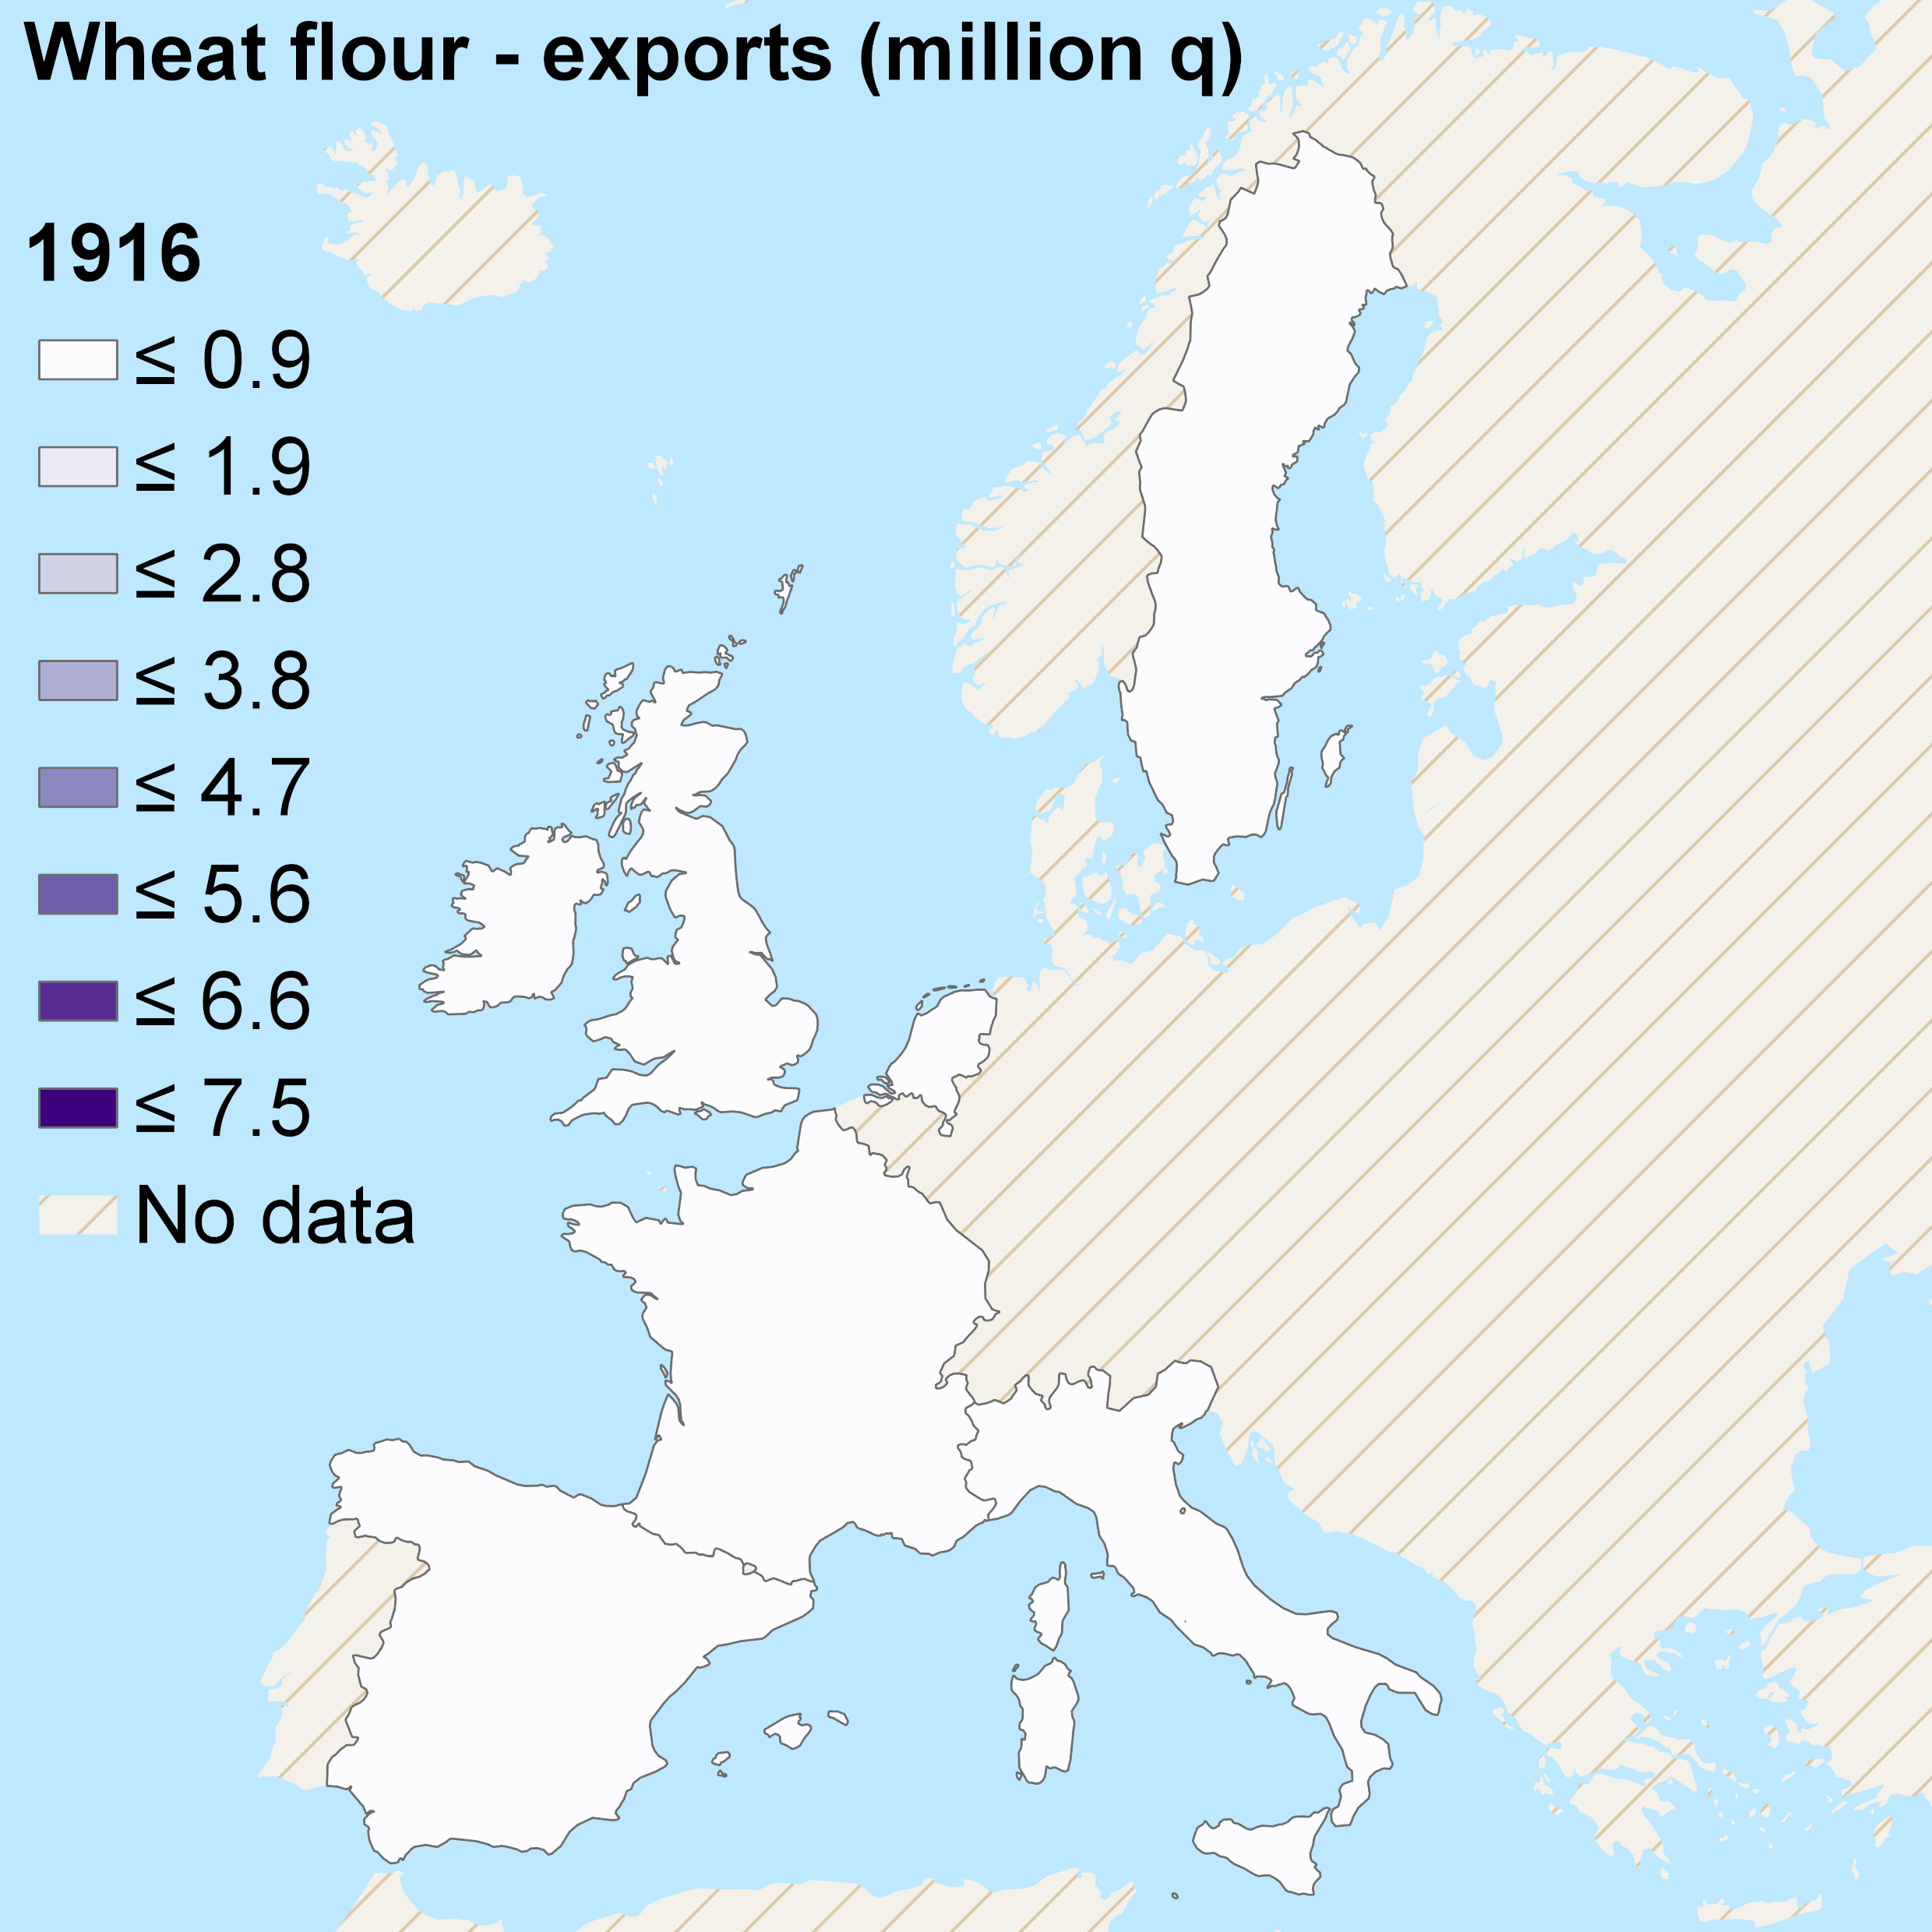 wheat-flour-exports-1916-v2